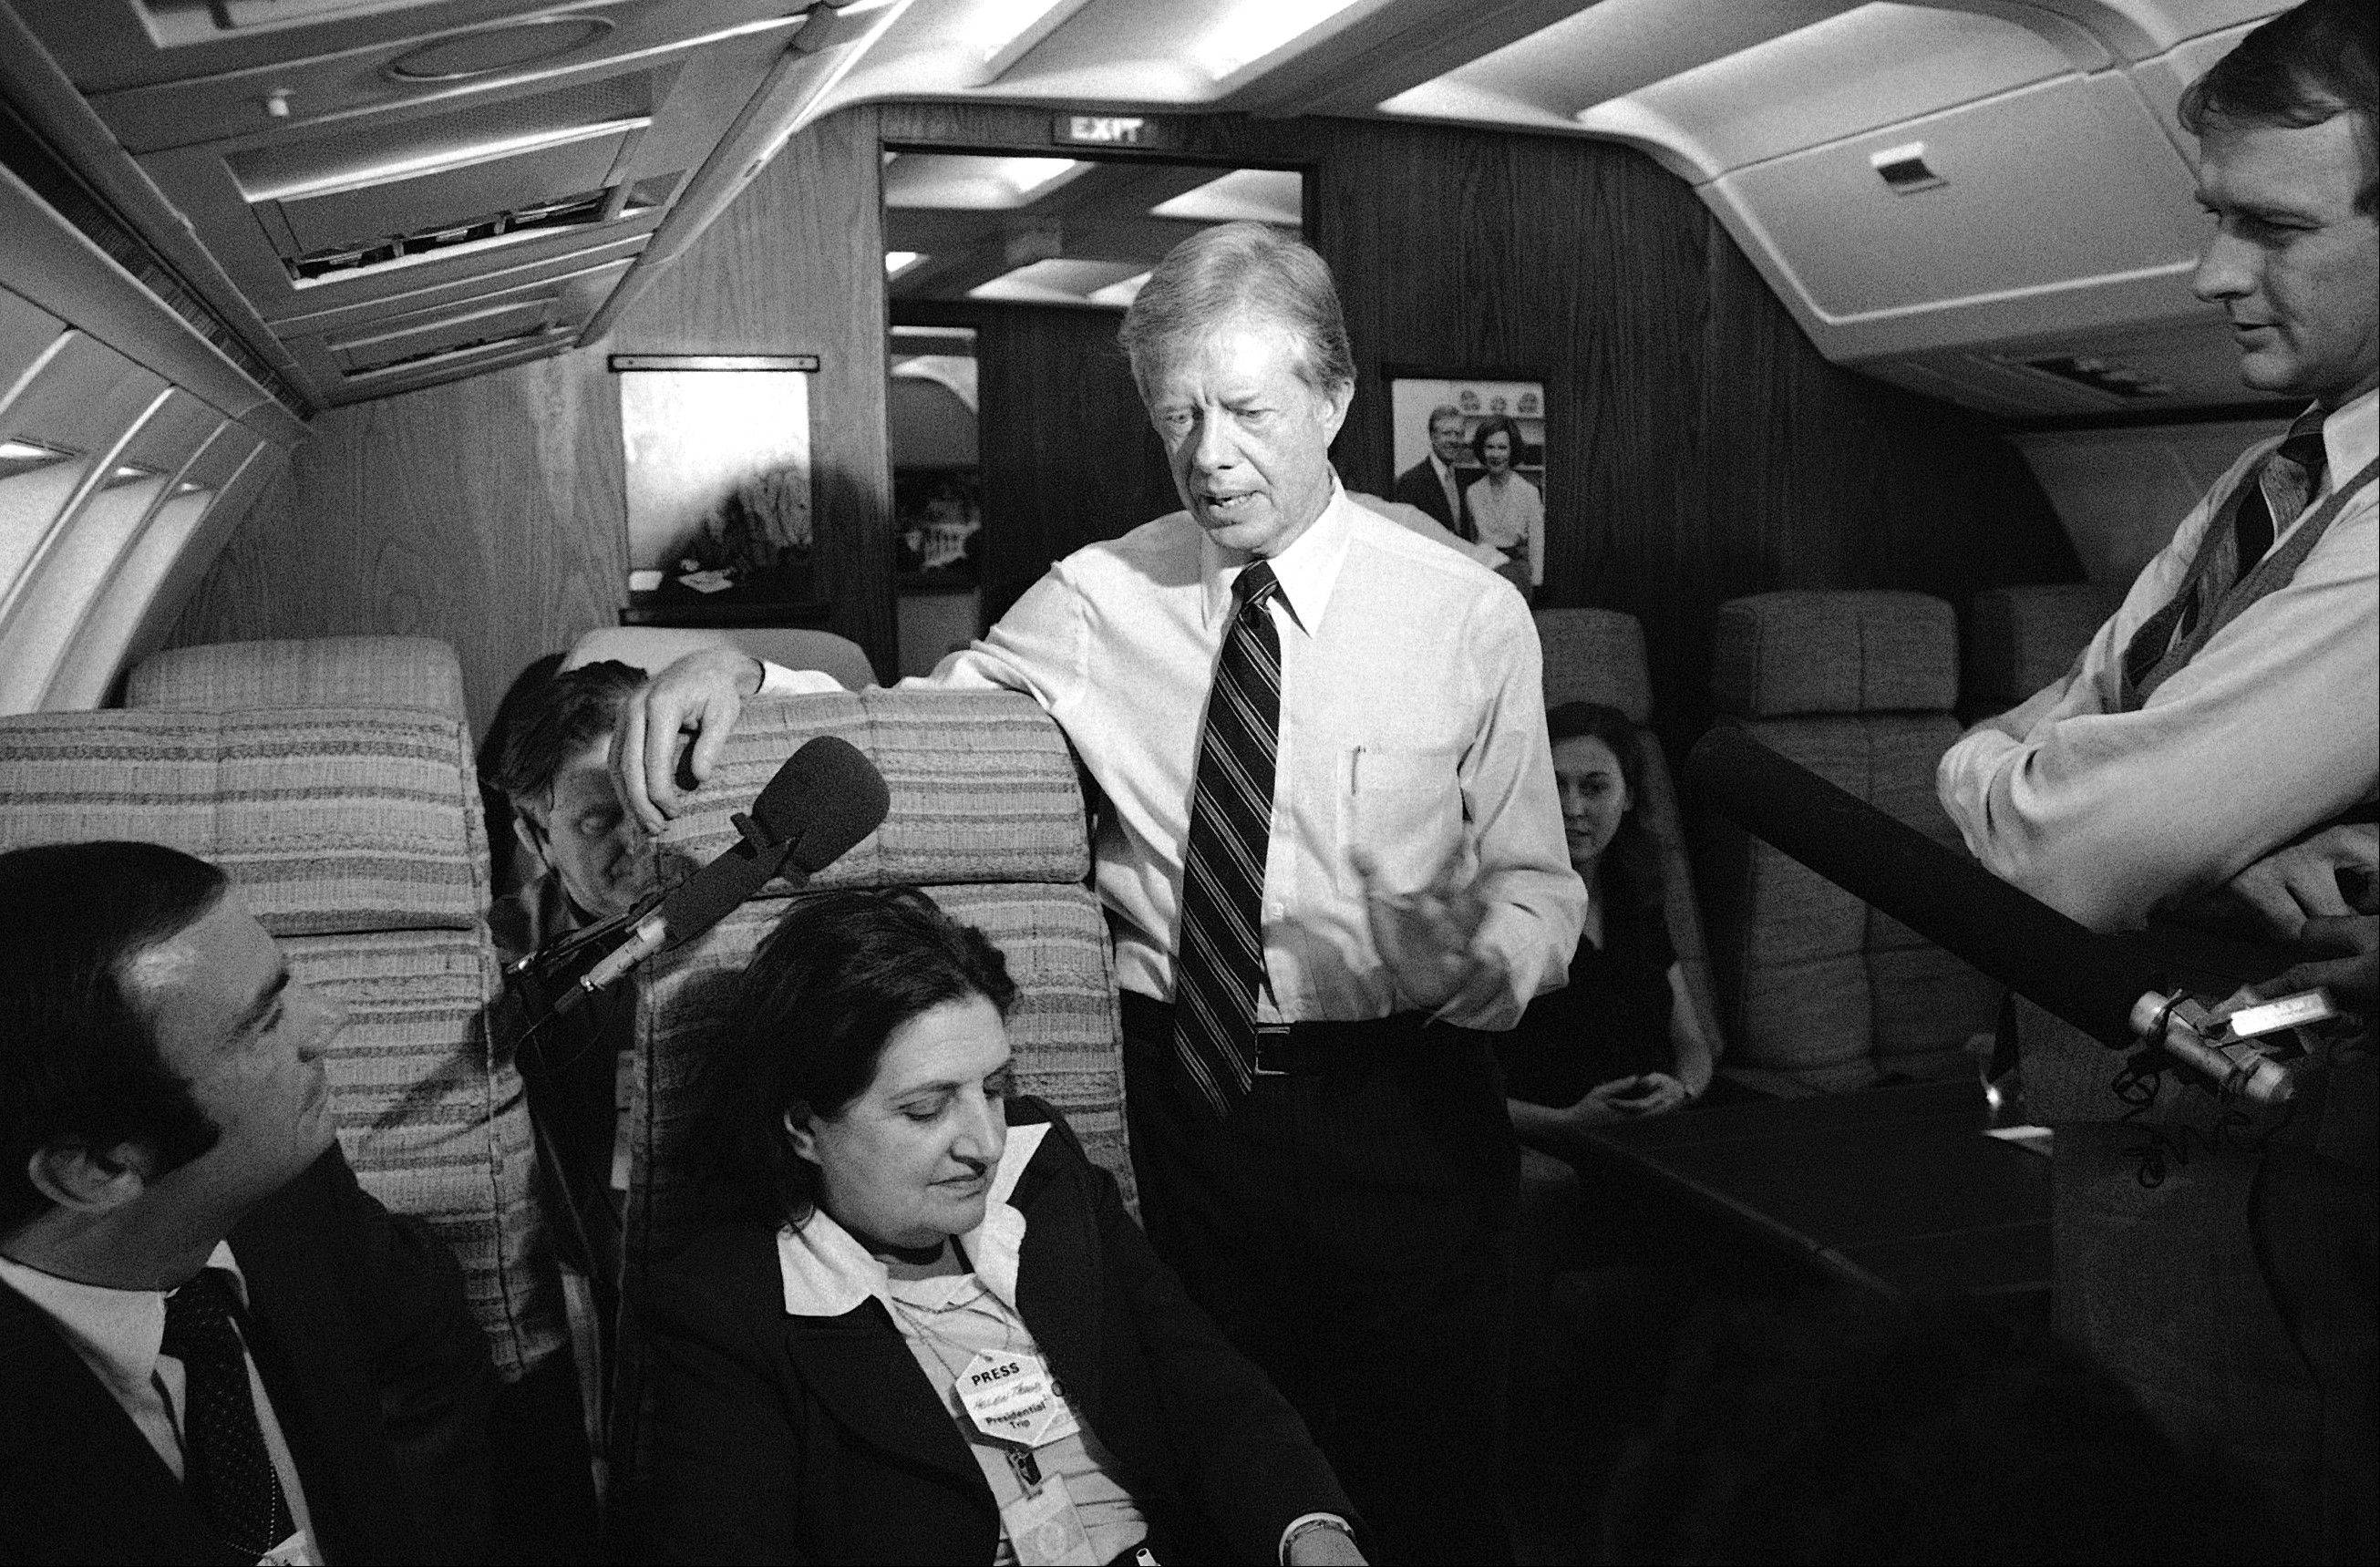 Associated PressIn this Oct. 20, 1979, file photo, President Jimmy Carter and press secretary Jody Powell, right, talk with reporters Helen Thomas, center, and Sam Donaldson, left, while aboard Air Force One prior to landing at Andrews Air Force Base, Md. Thomas, a pioneer for women in journalism and an irrepressible White House correspondent, has died Saturday, July 20. She was 92.